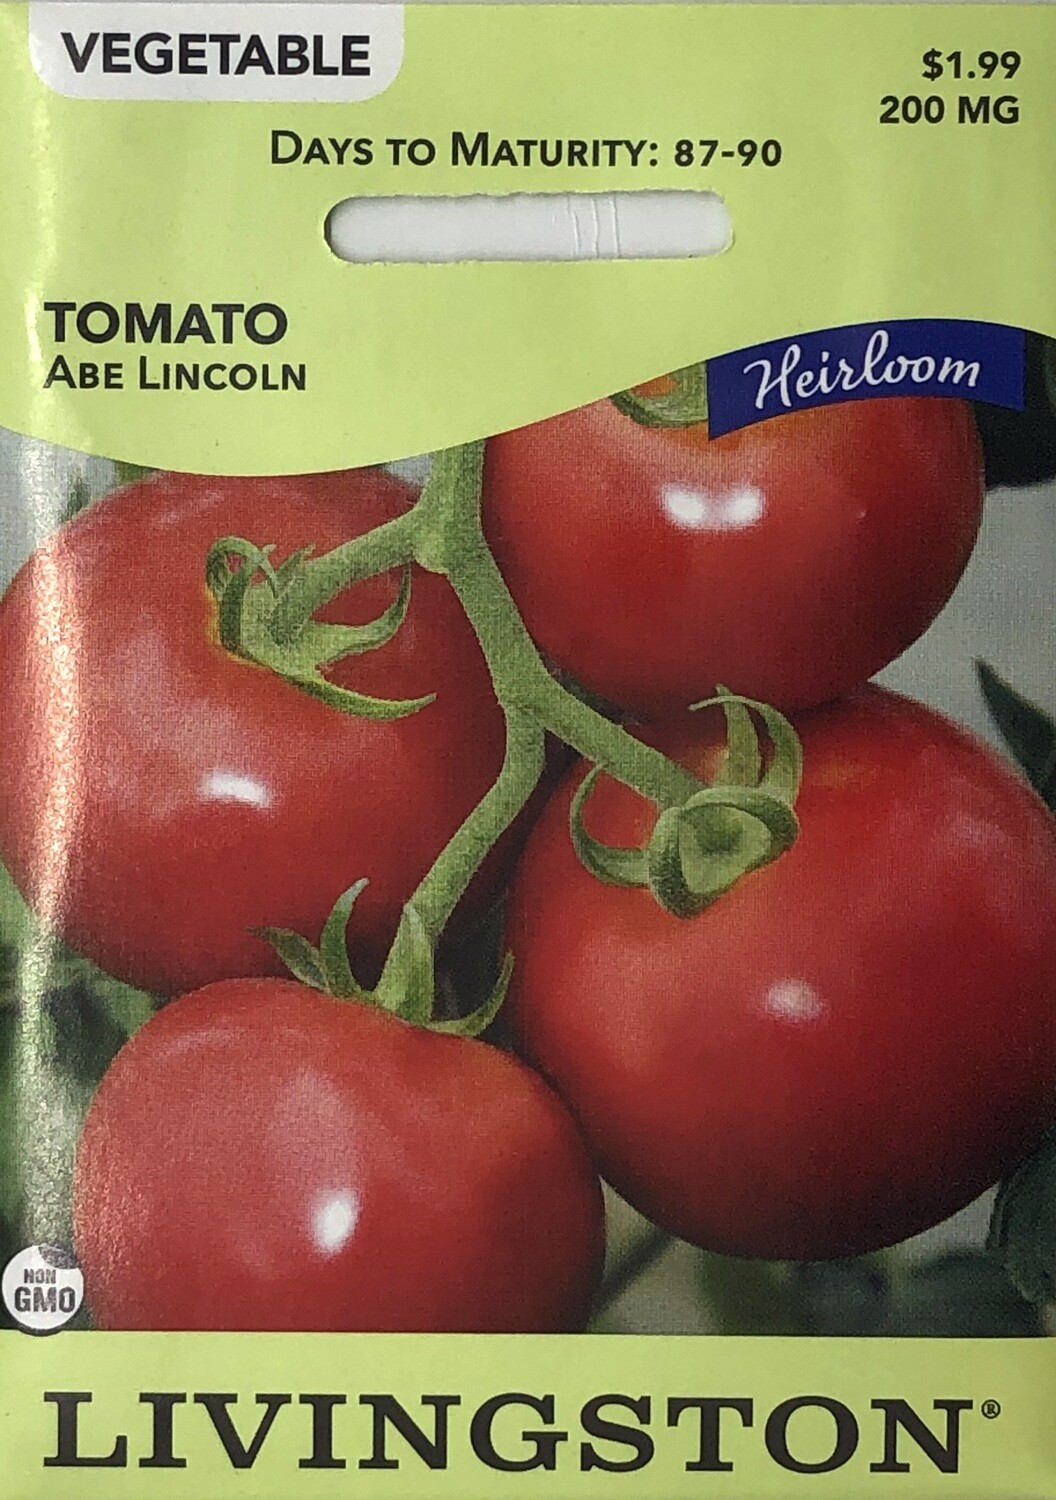 TOMATO - HEIRLOOM - ABE LINCOLN